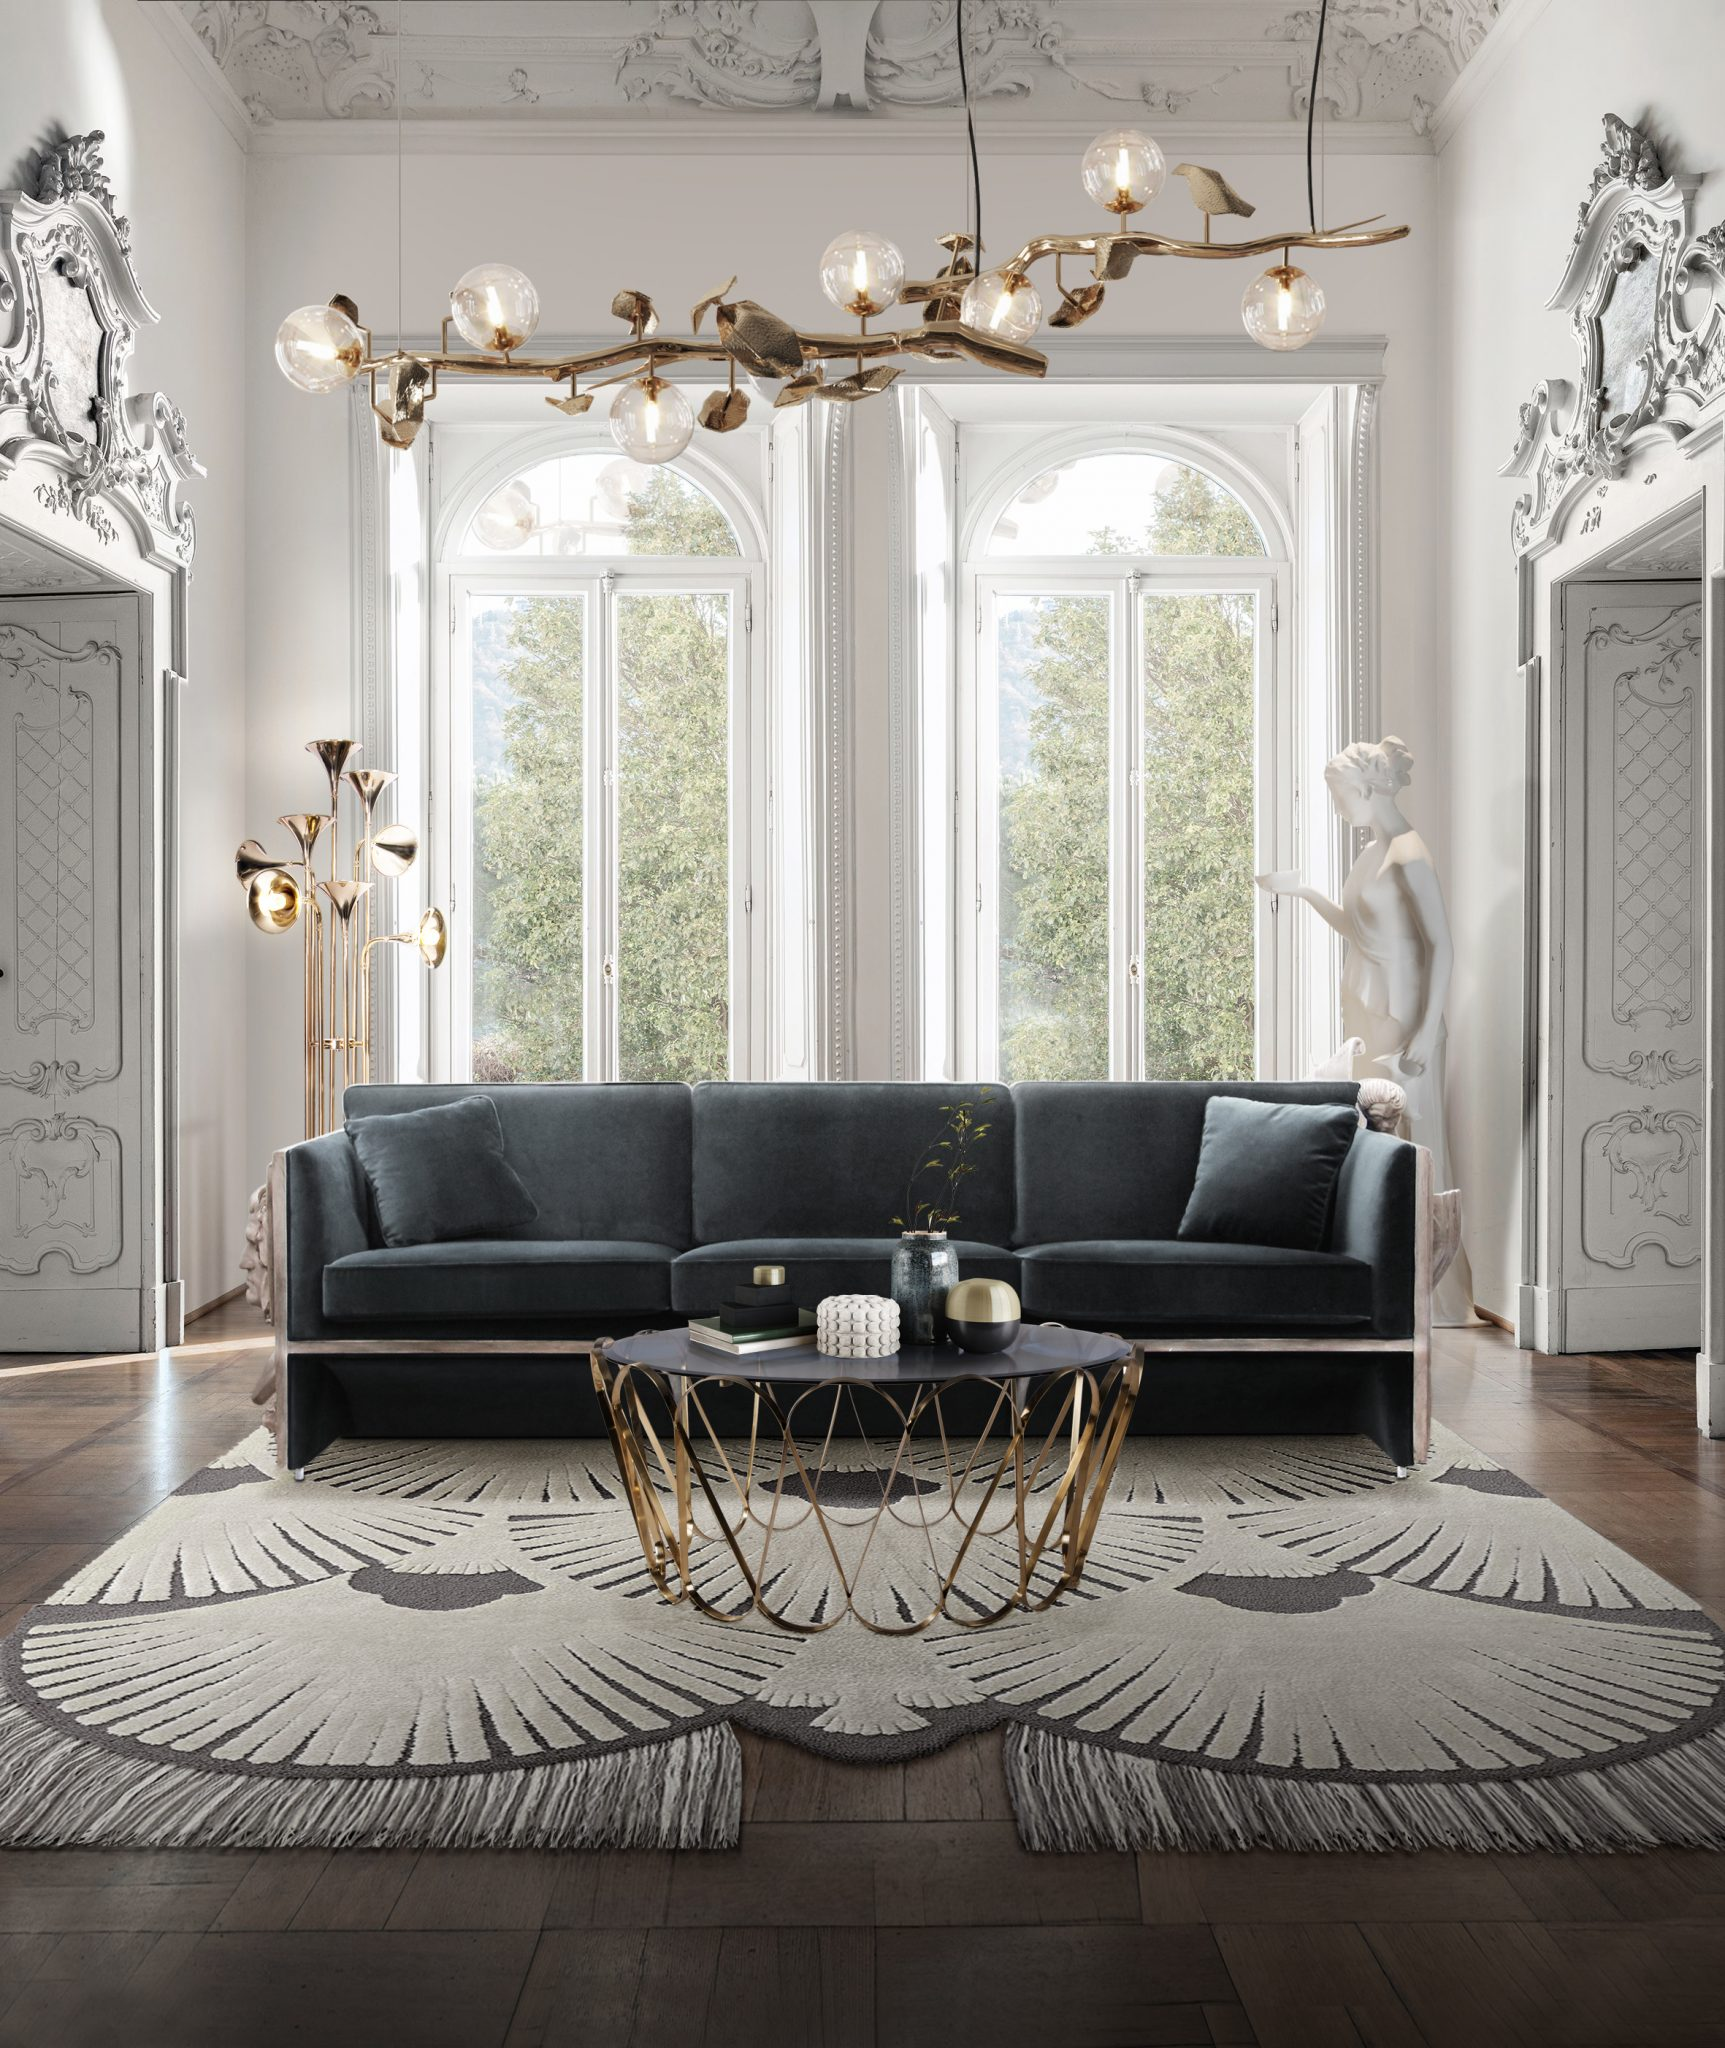 A TRENDY LIVING ROOM WITH BOTTI FLOOR LAMP